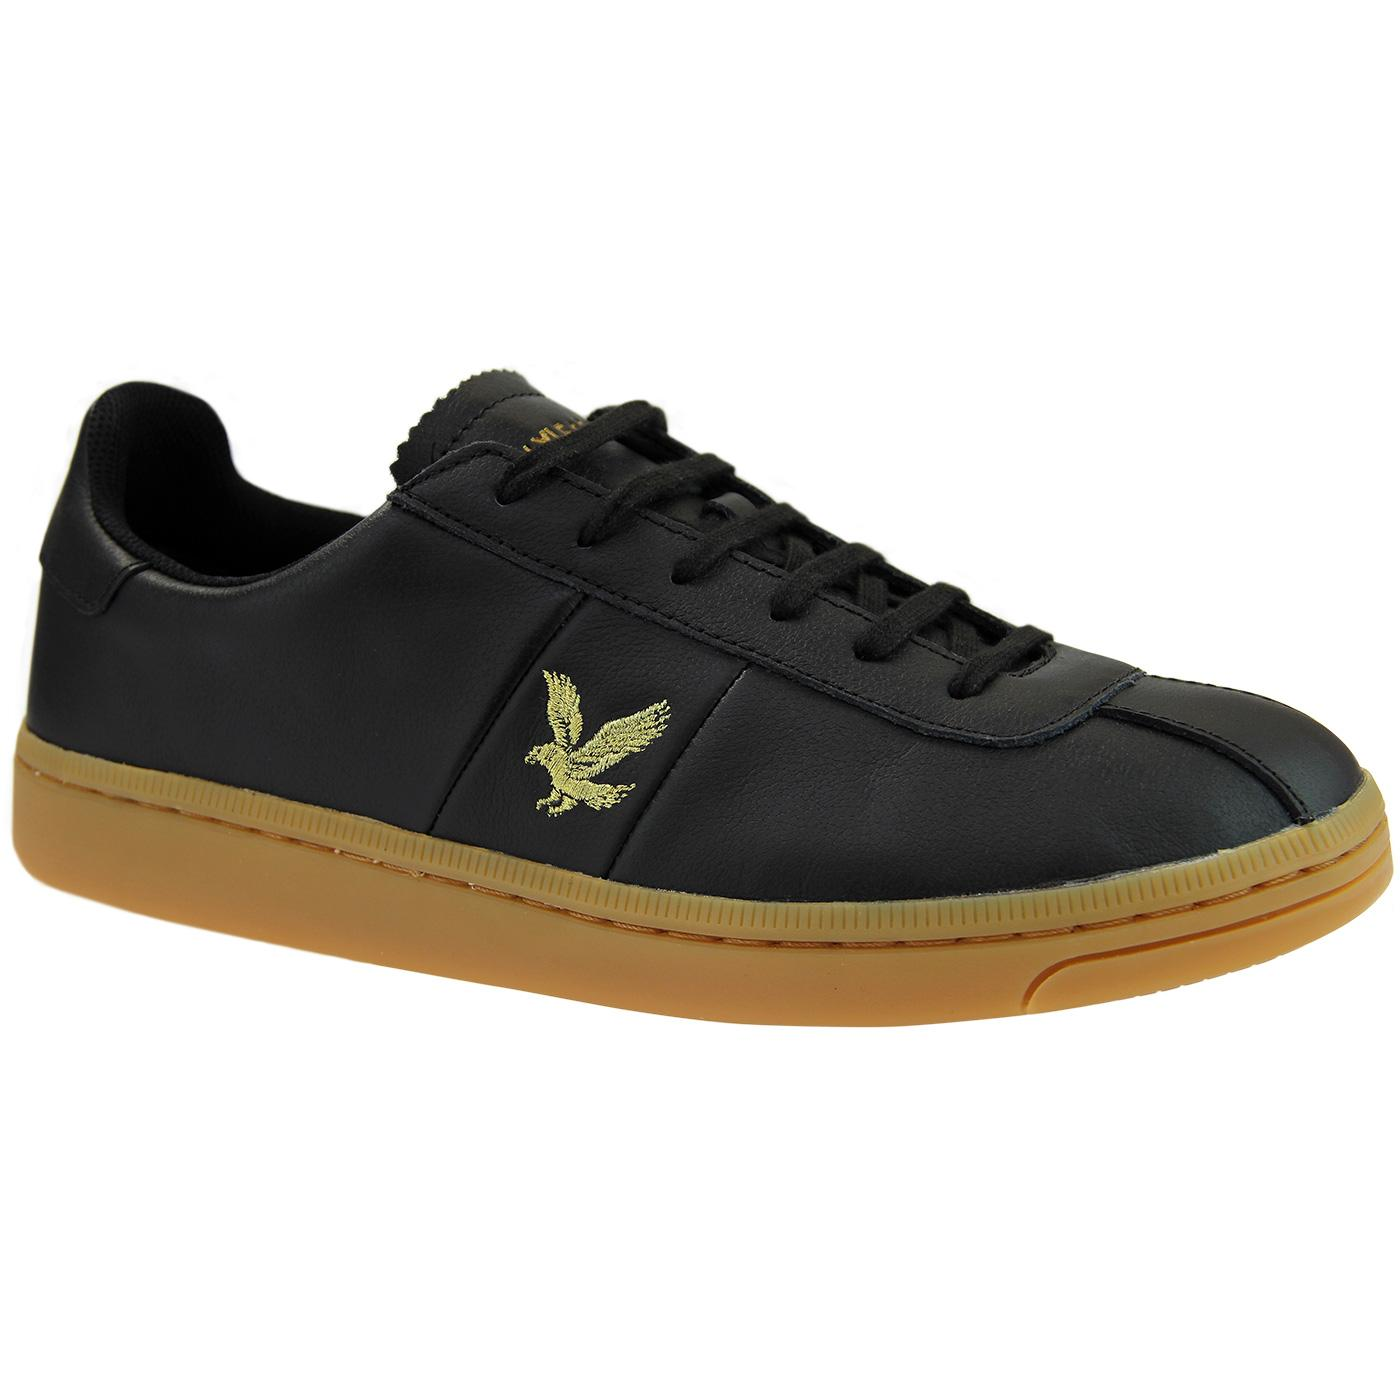 Campbell LYLE & SCOTT Men's Black Leather Trainers